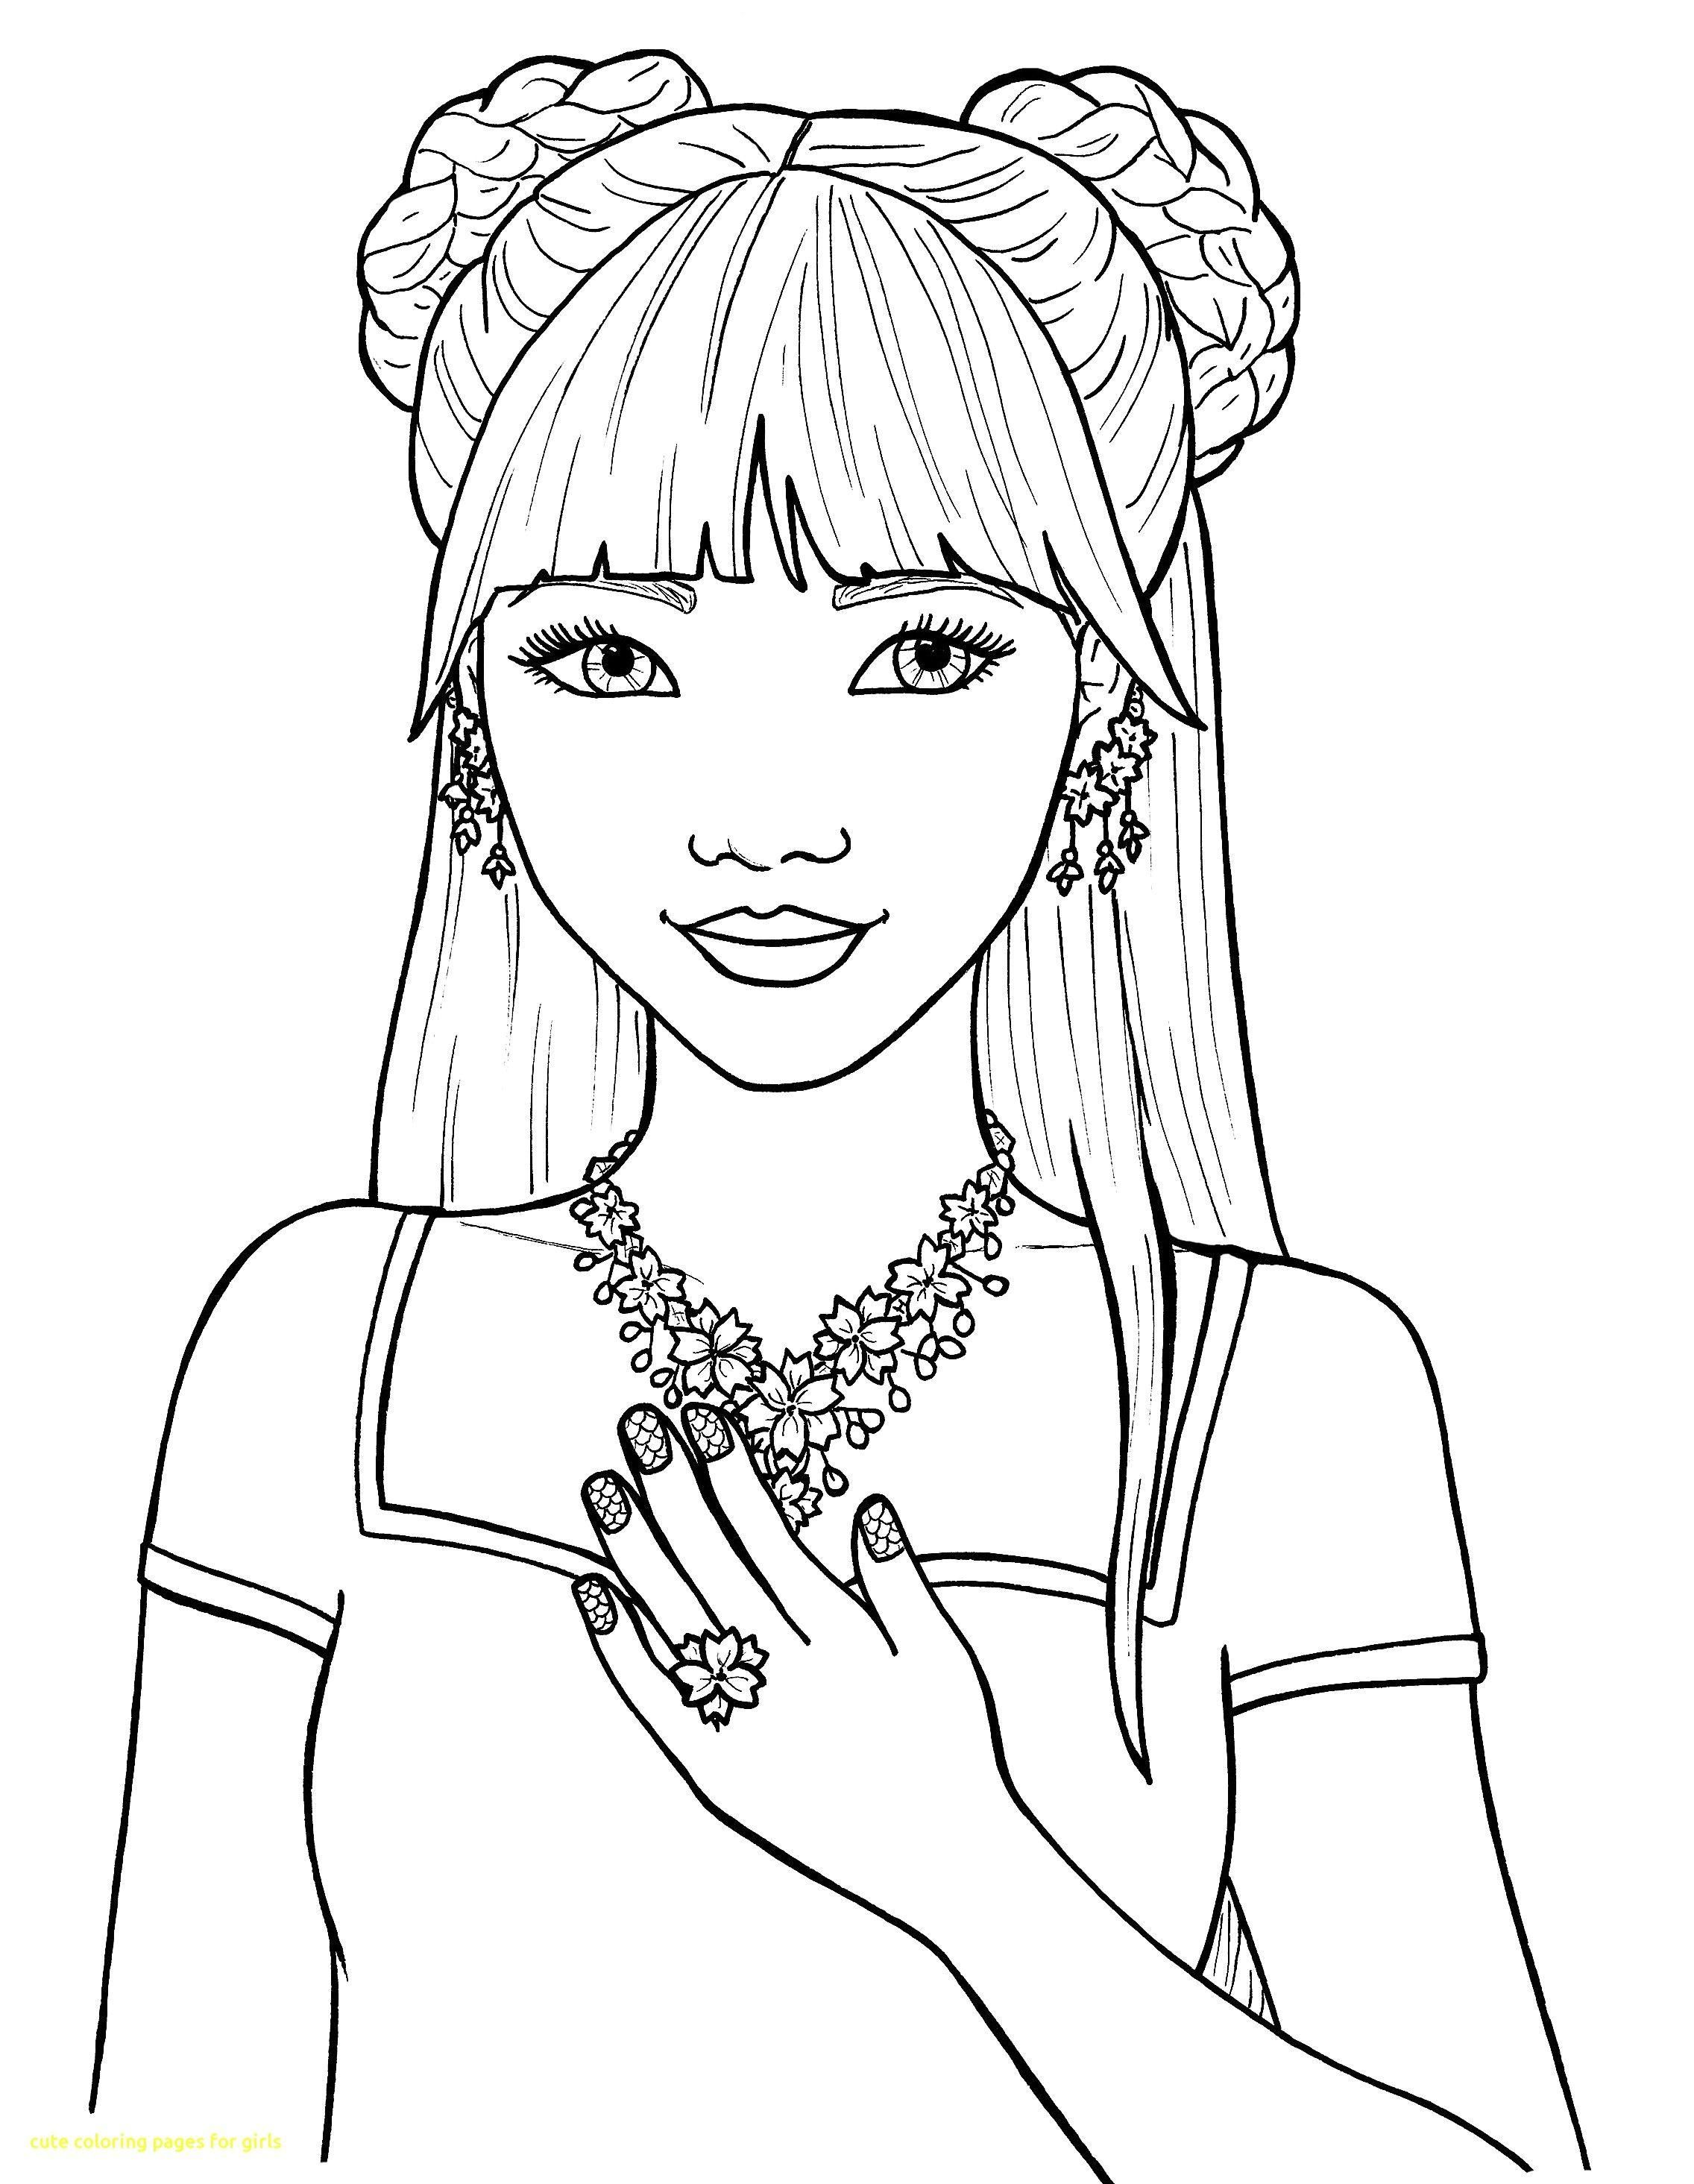 Coloring Pages For Girl Avec Images Licorne A Colorier